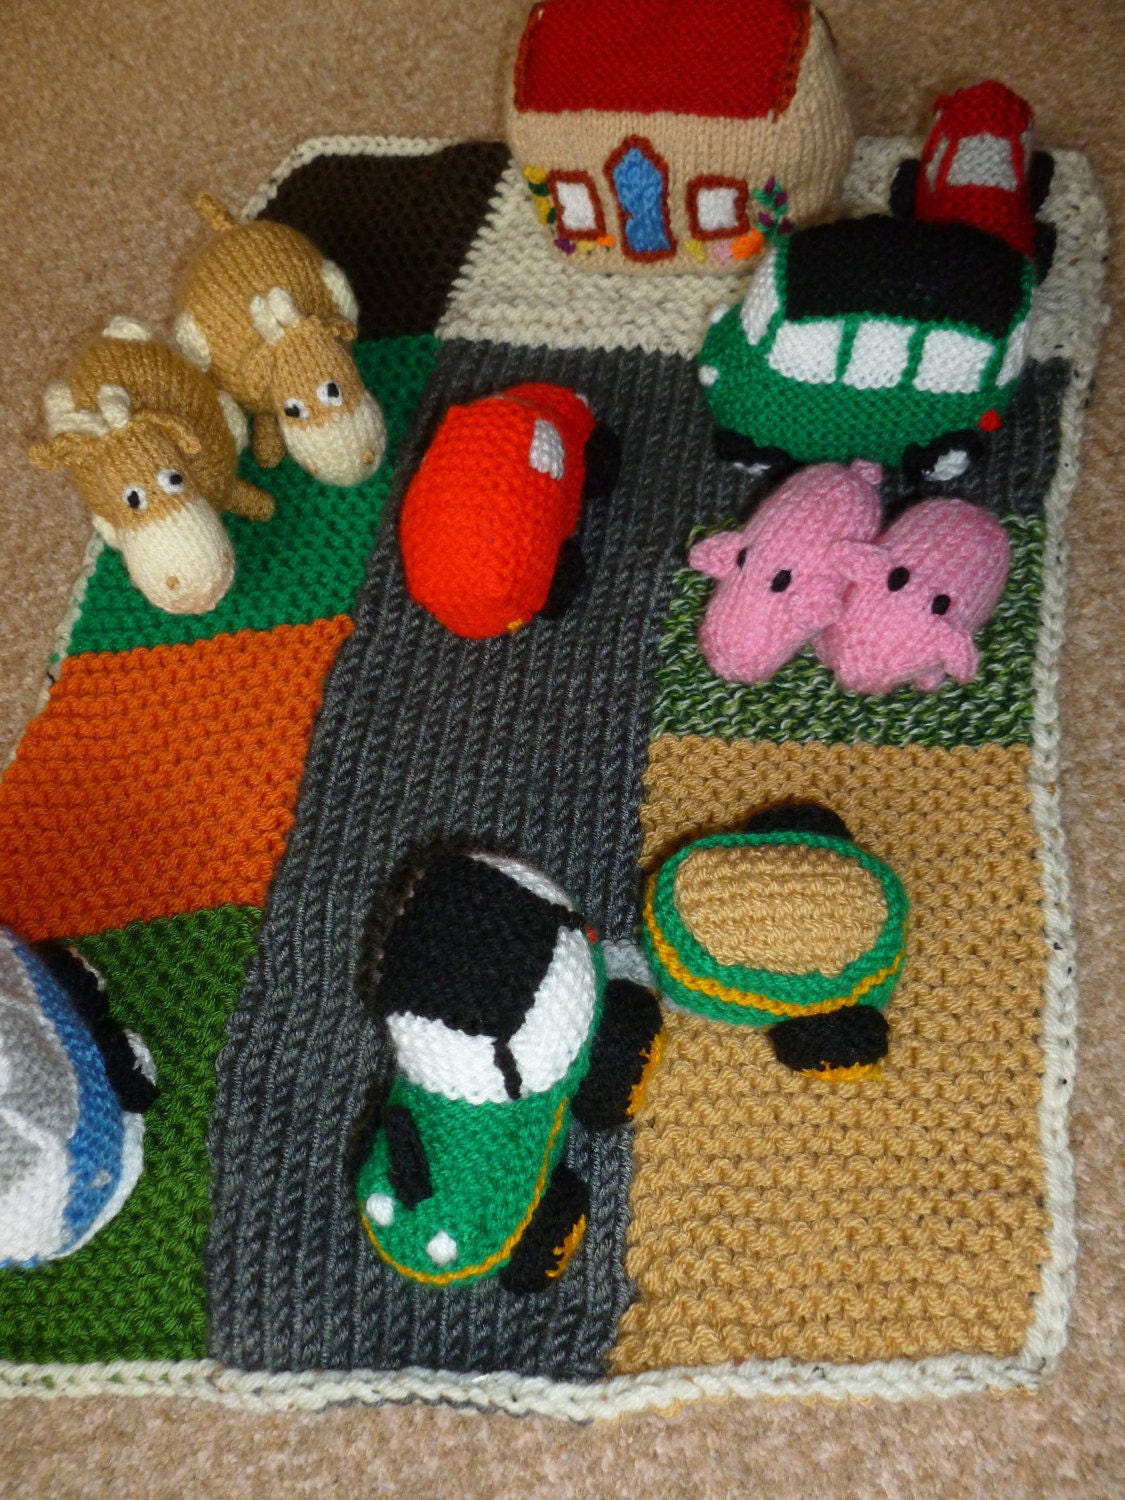 Farm road playmat with vehicles